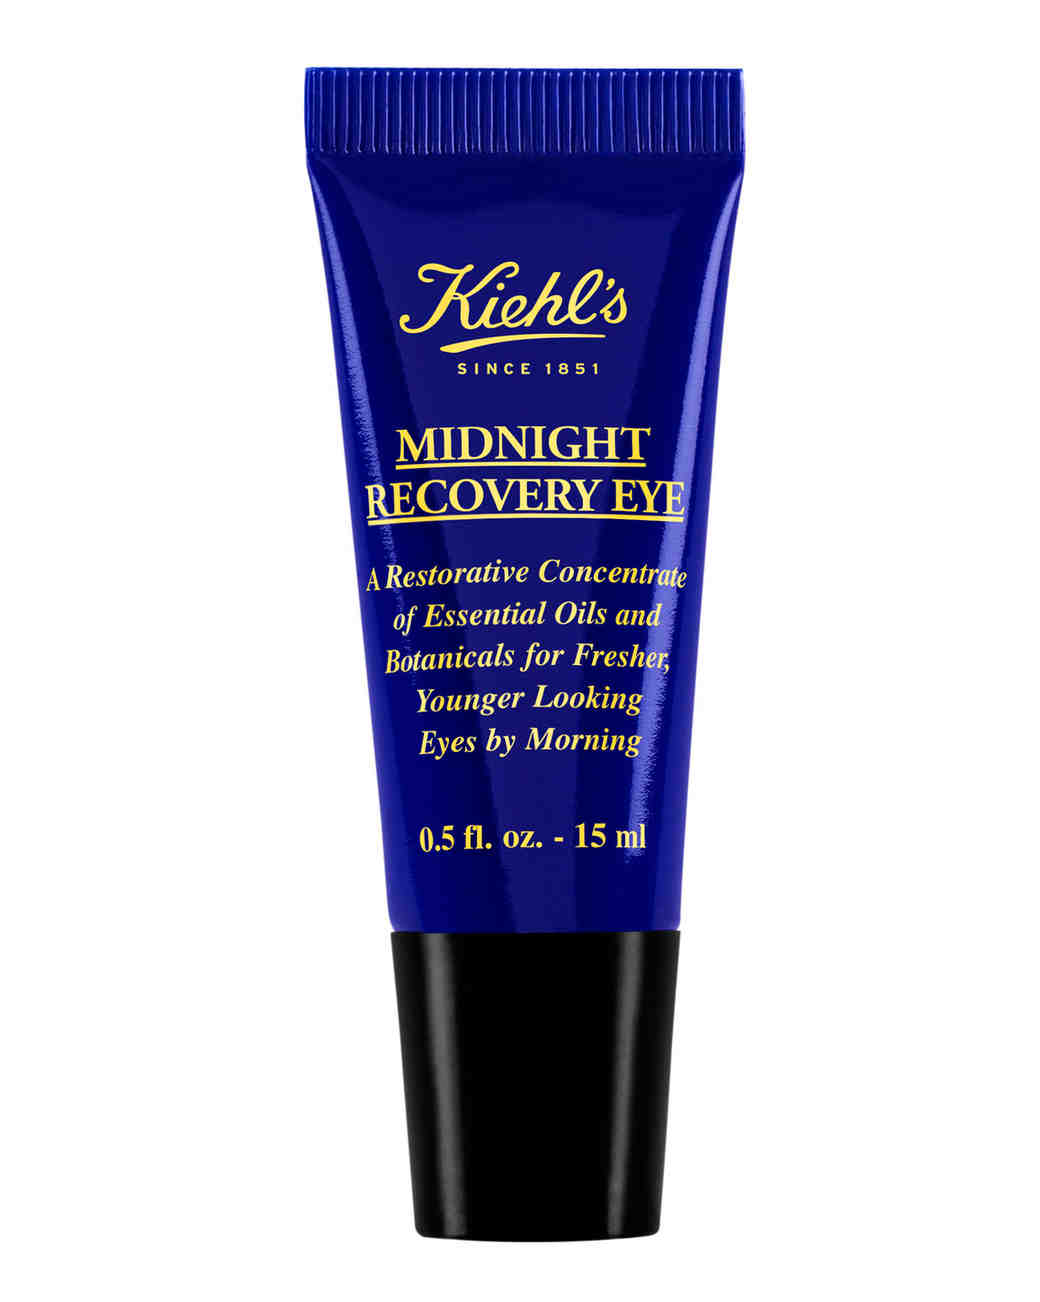 overnight-beauty-producst-kiehls-midnight-recovery-eye-0915.jpg